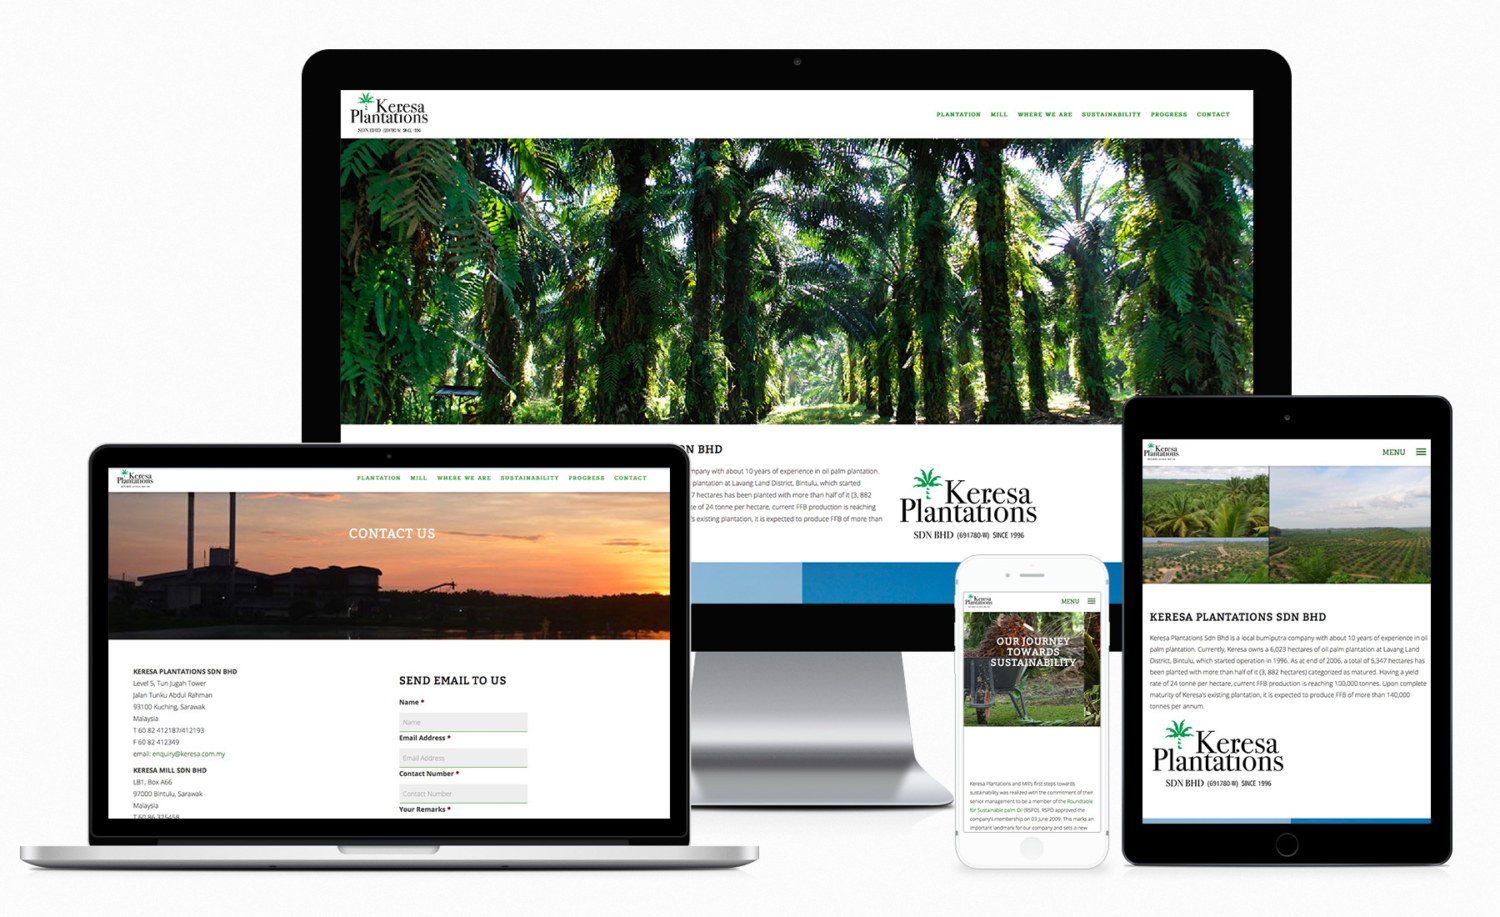 Keresa Plantations Sdn Bhd Official Website Design